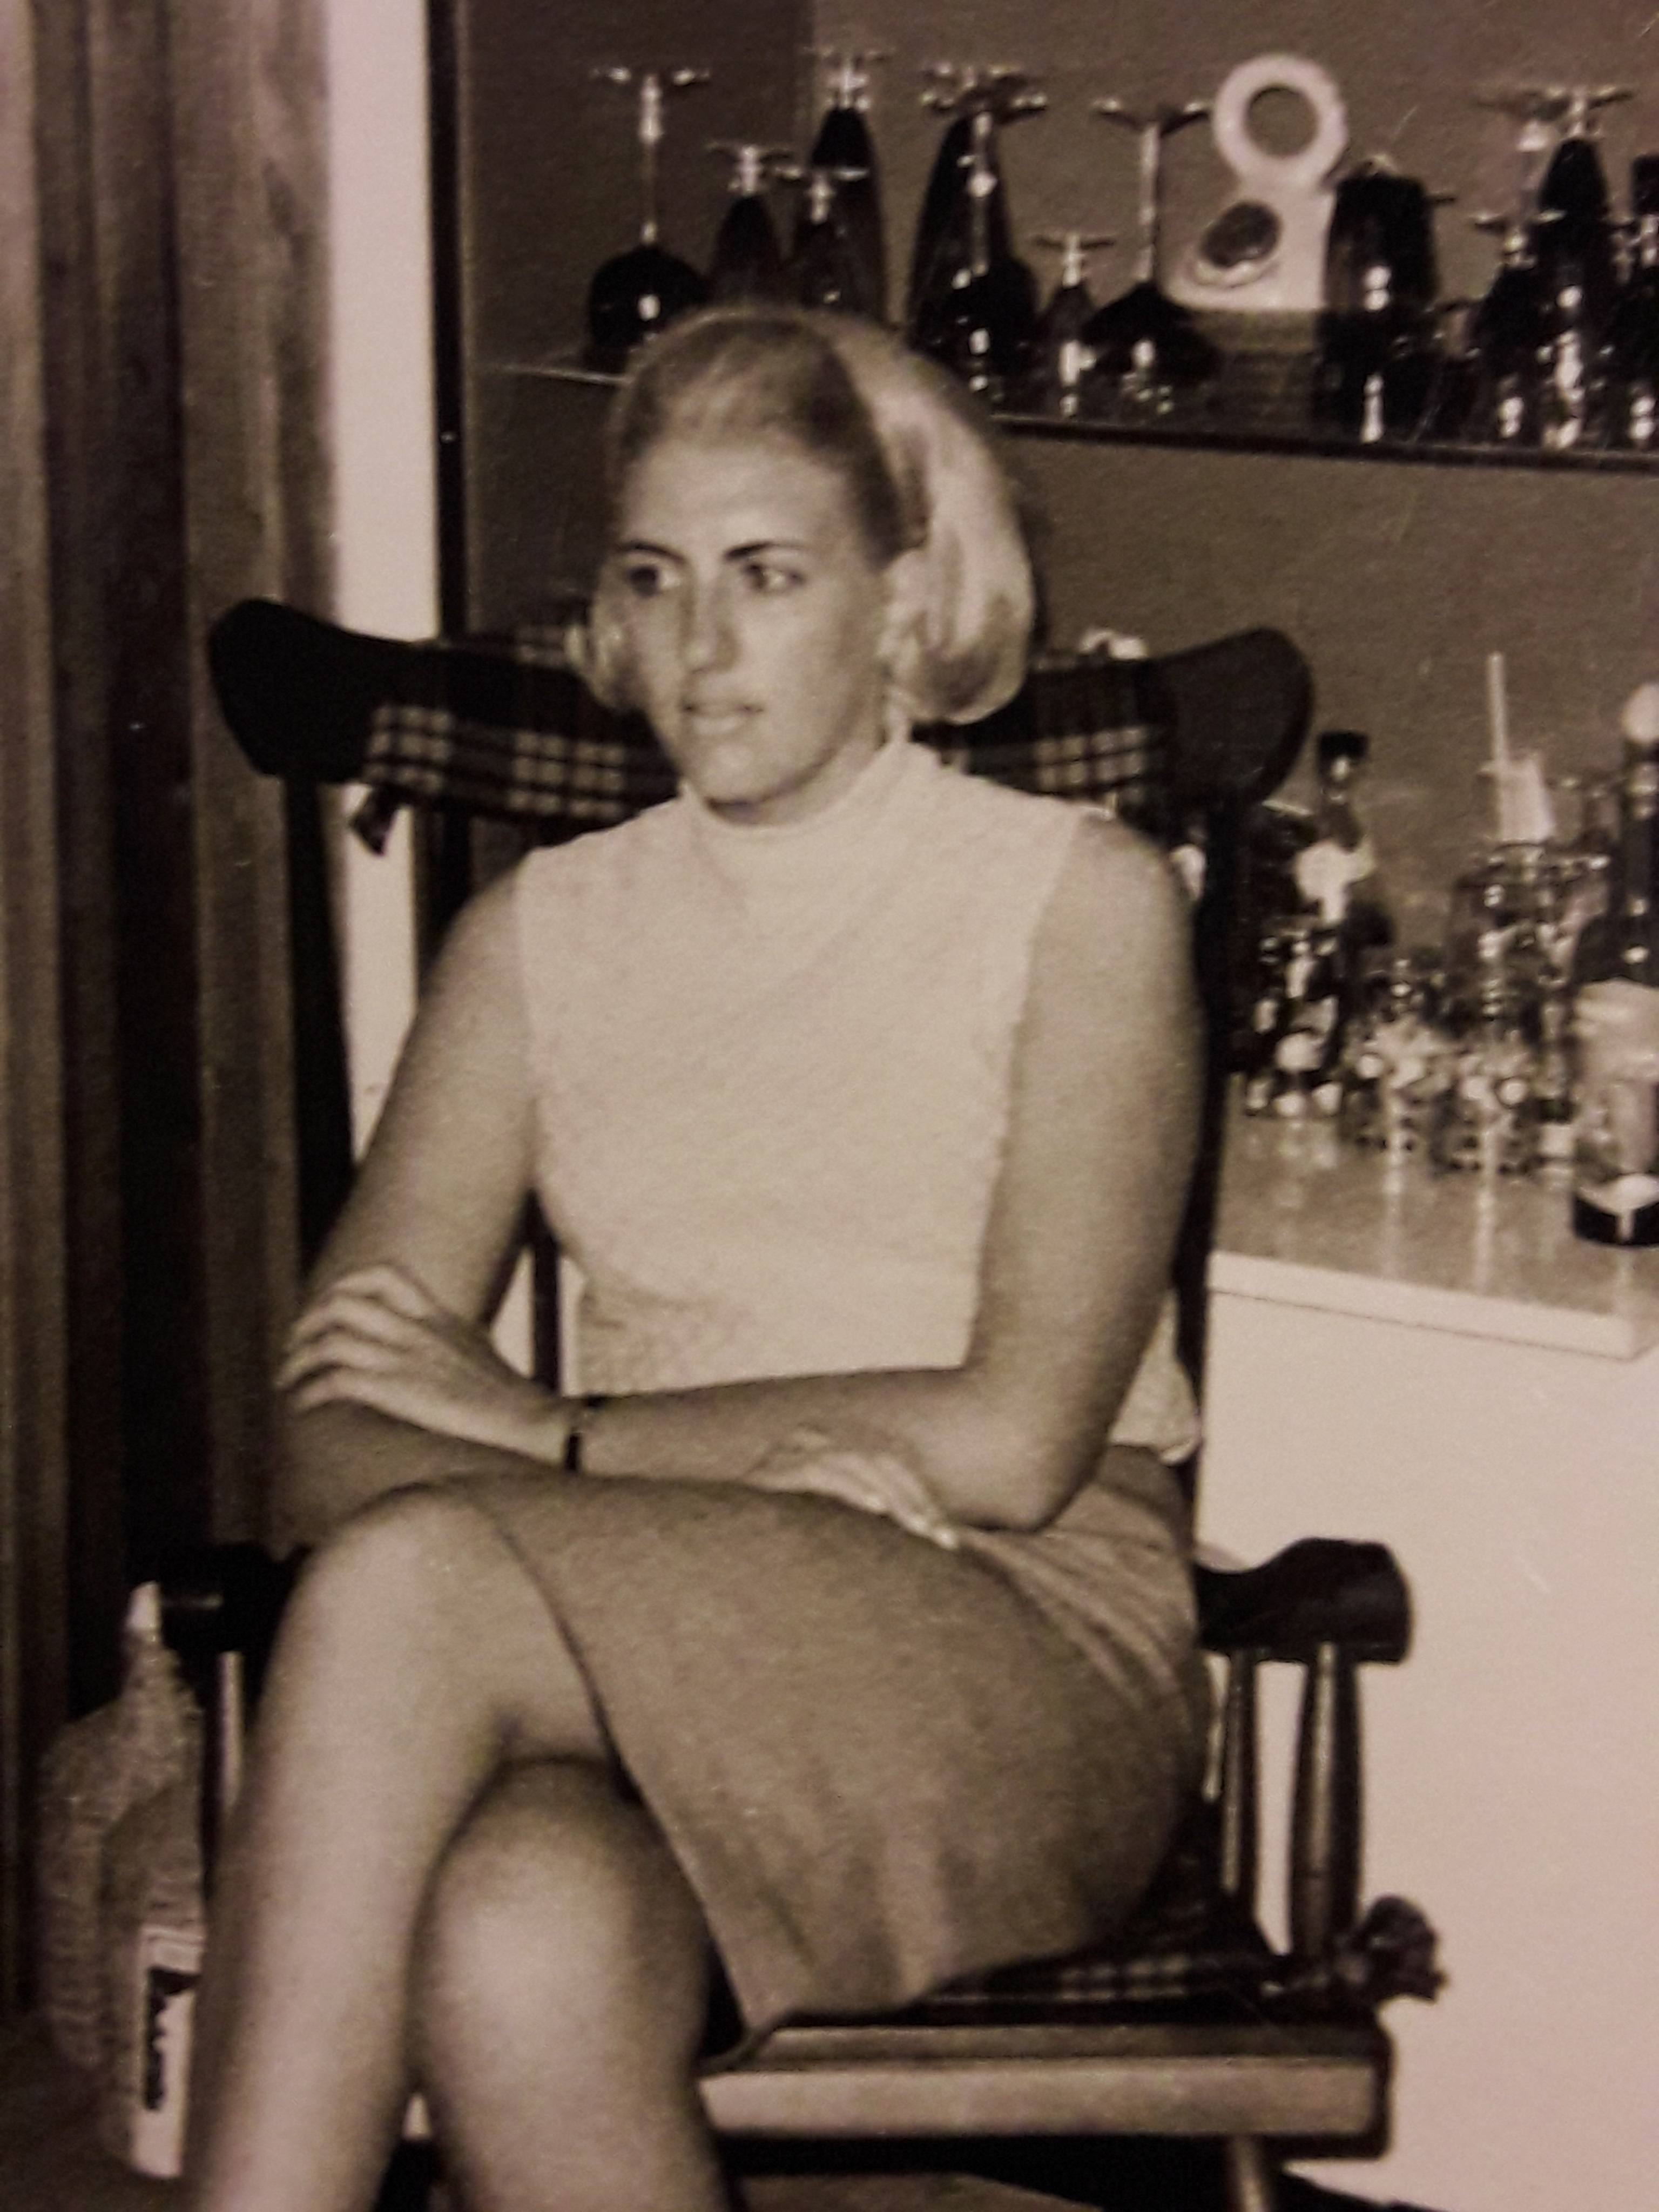 Jan's mother Conny at age 20.